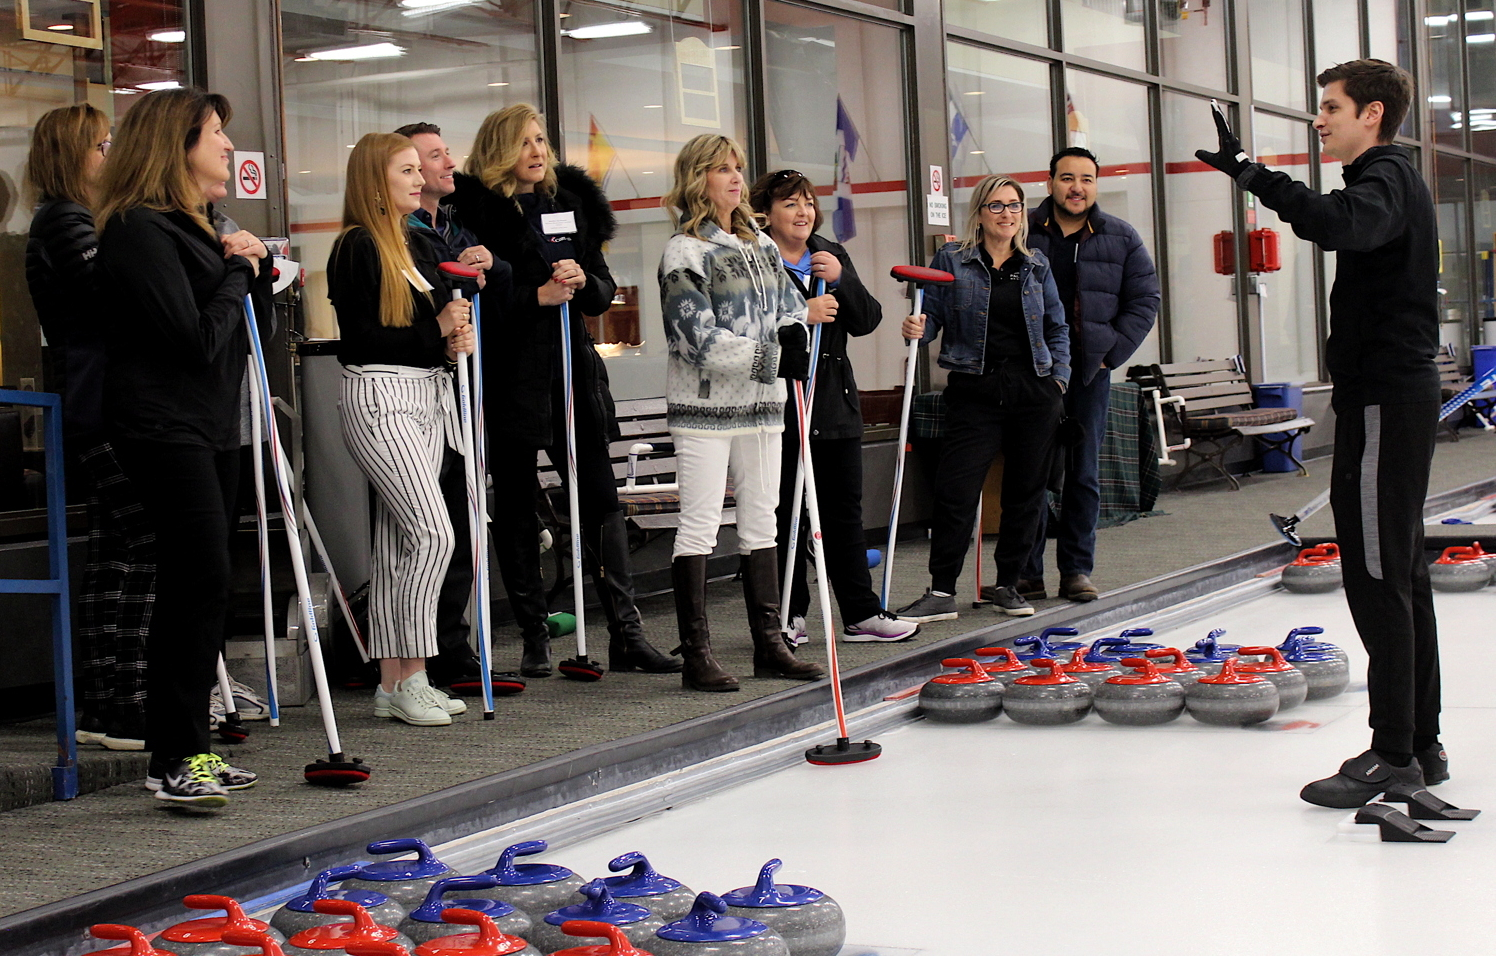 SWEEPING SUCCESS. TravelOnly's preferred partners grabbed their brooms and hit the ice in a friendly curling match at Toronto's Granite Club.